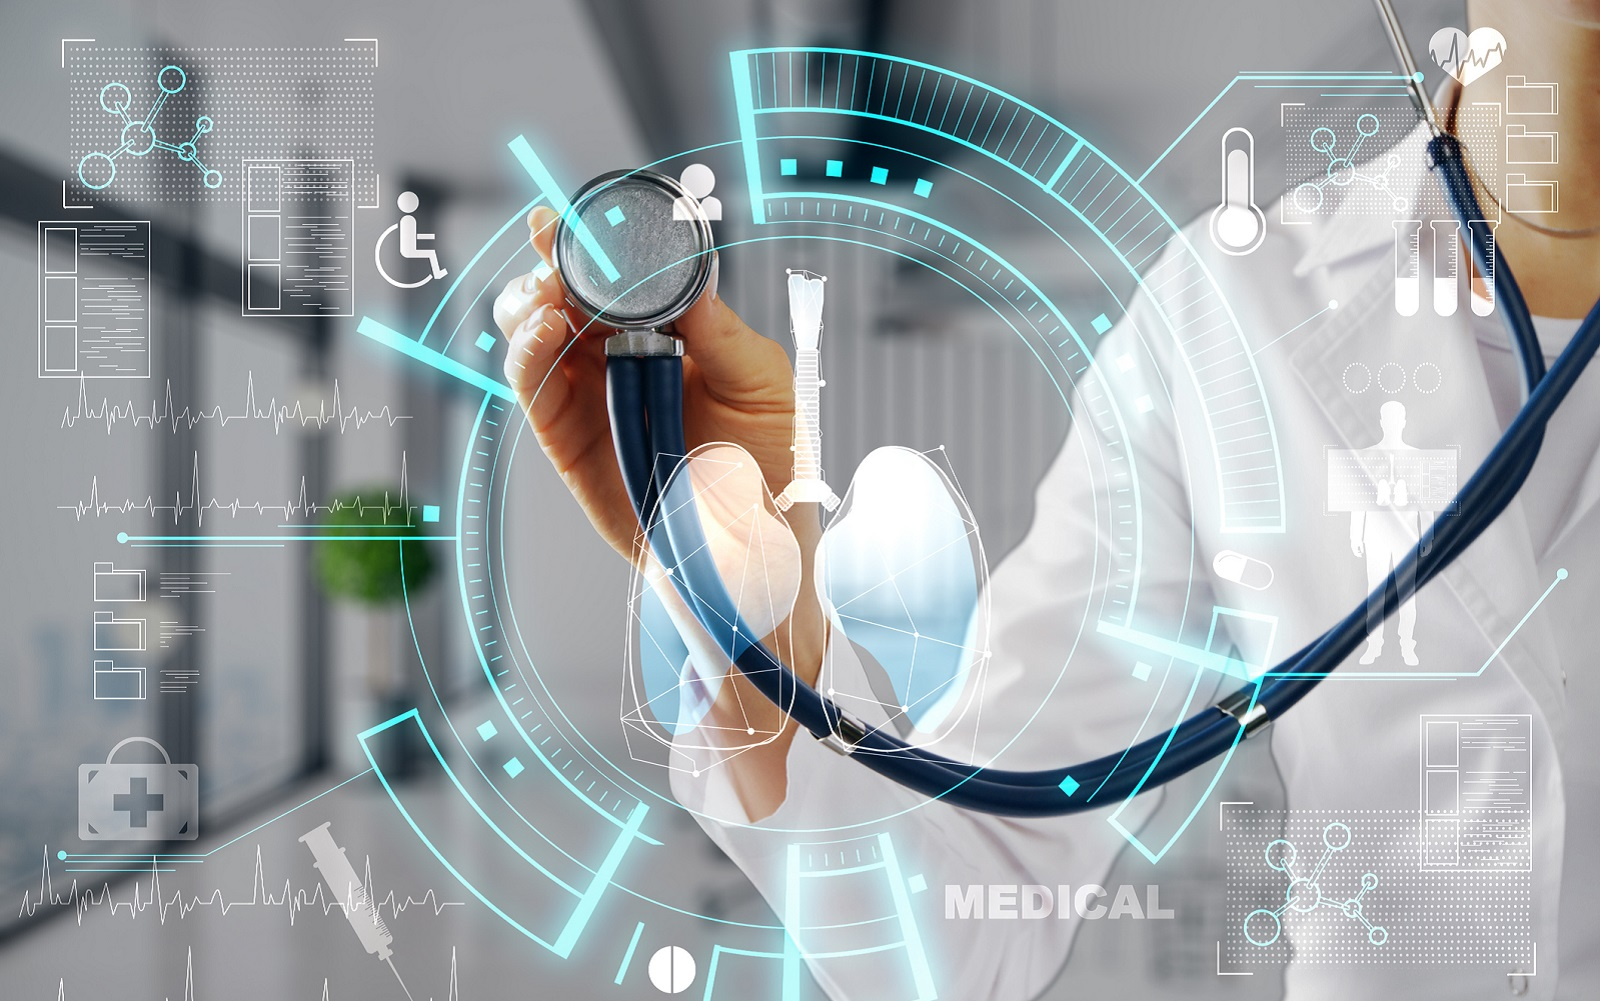 Image for evidence map on artificial intelligence in clinical care. A medical professional holding up a stethoscope against icons of medical conditions and processes.